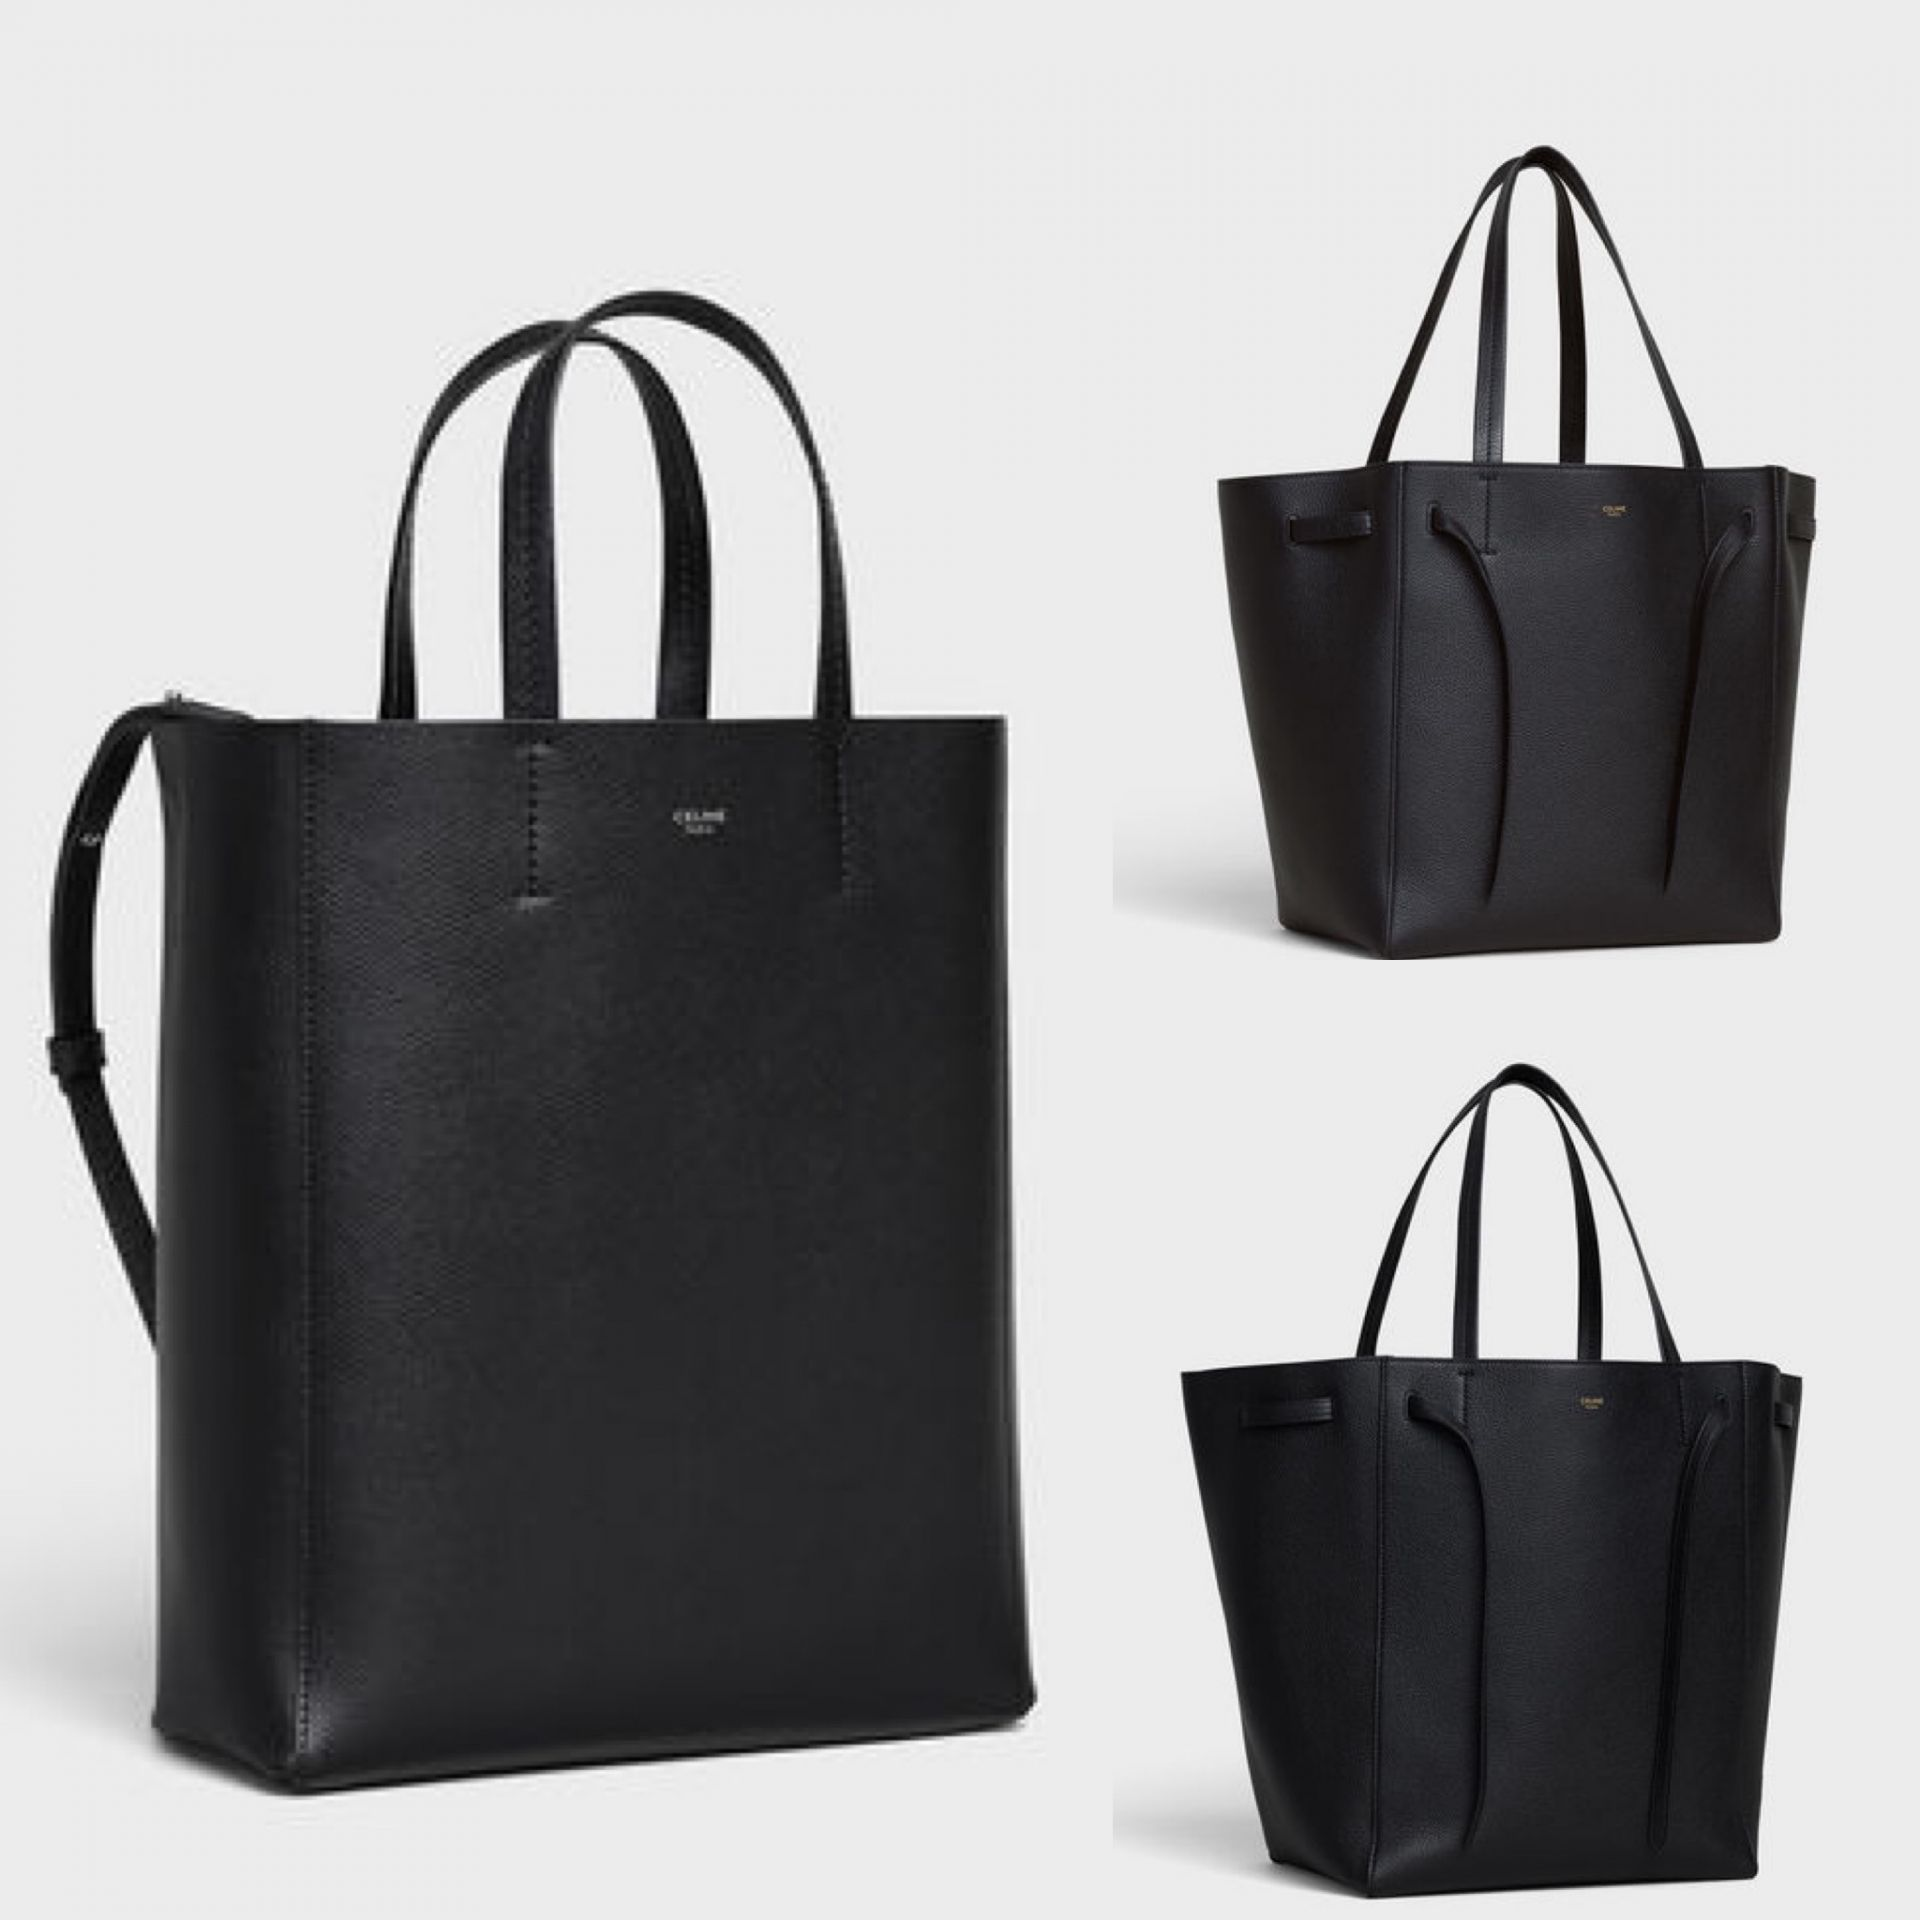 celine cabas tote review, wear and tear and sizing